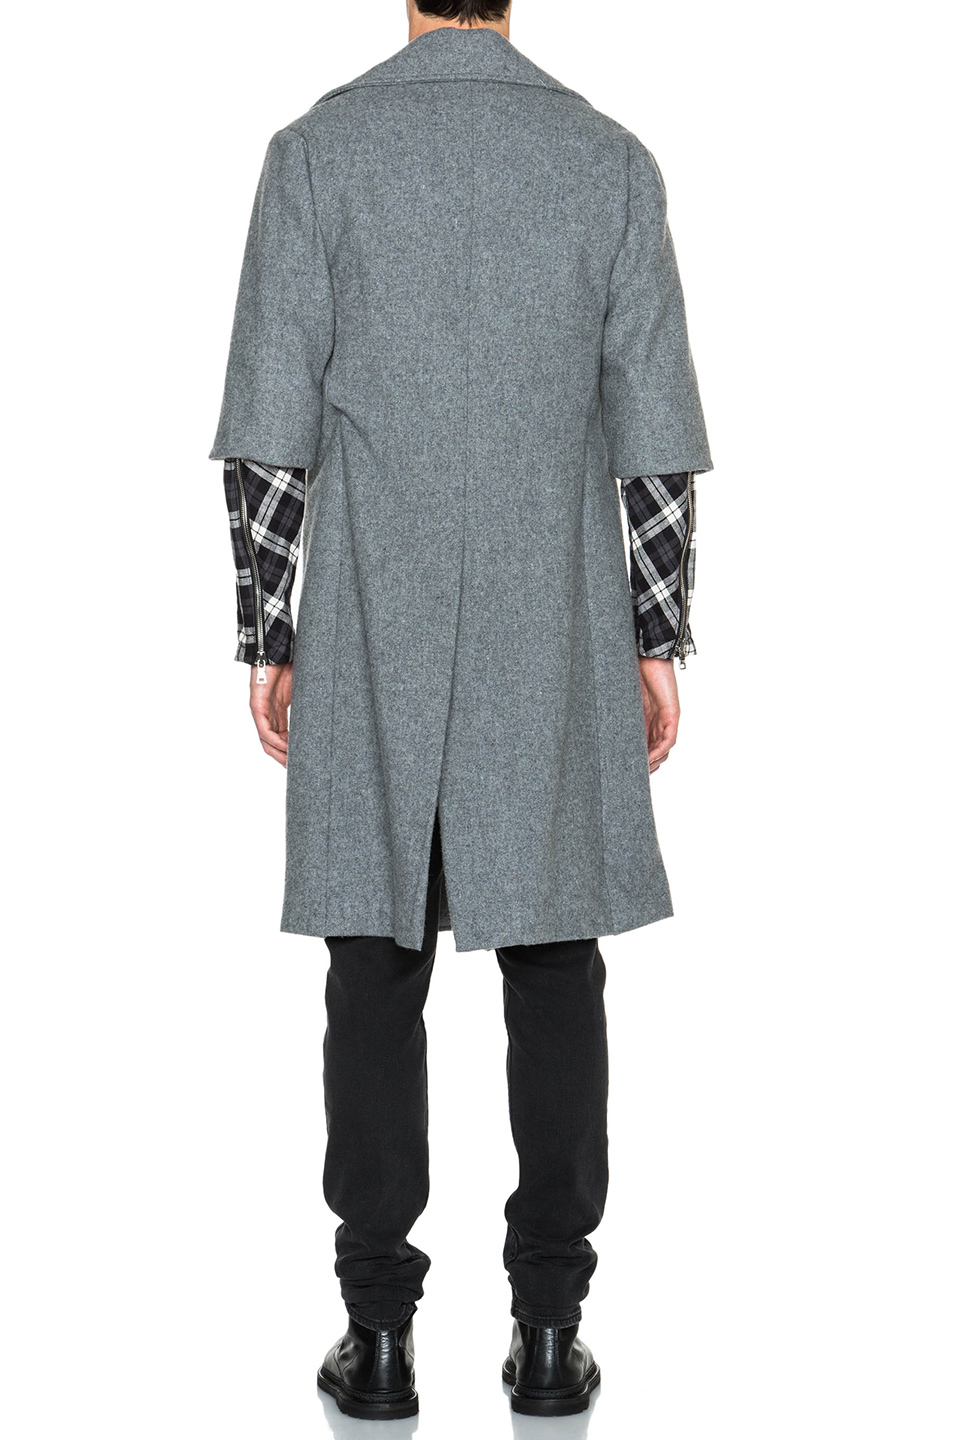 Fear of god Men's Car Coat in Gray | Lyst